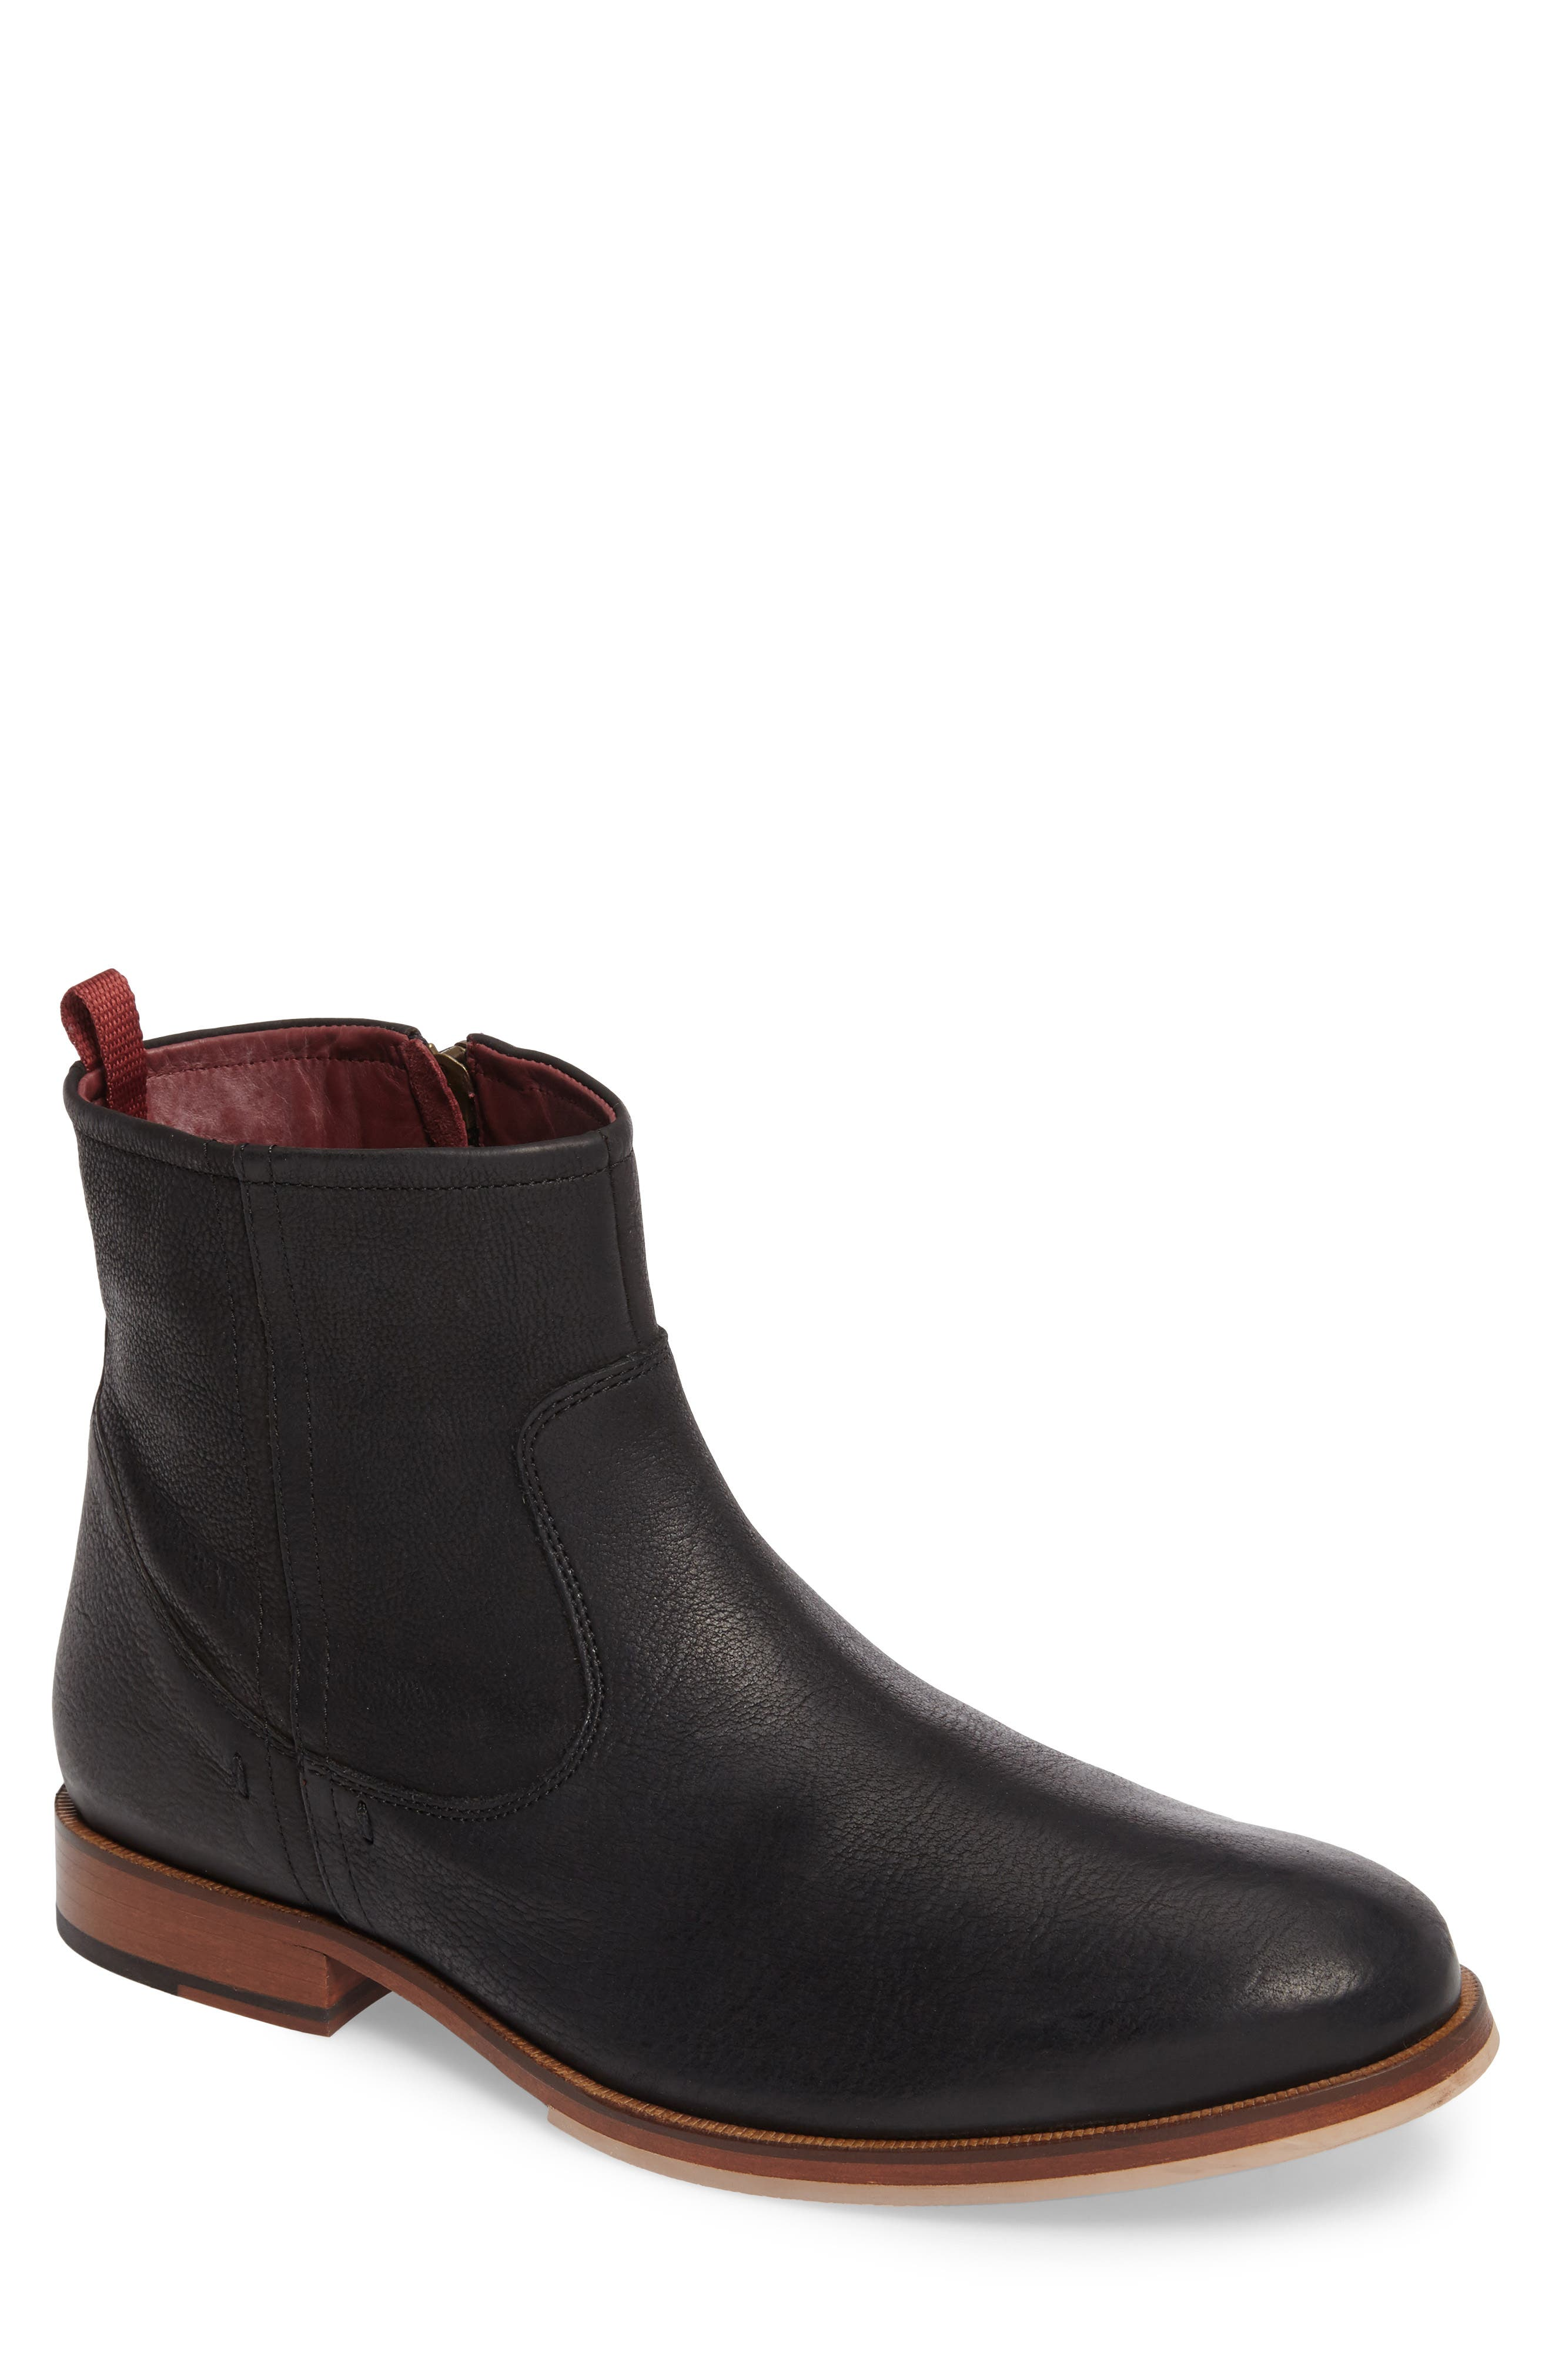 J SHOES 'Navarra' Zip Boot (Men)